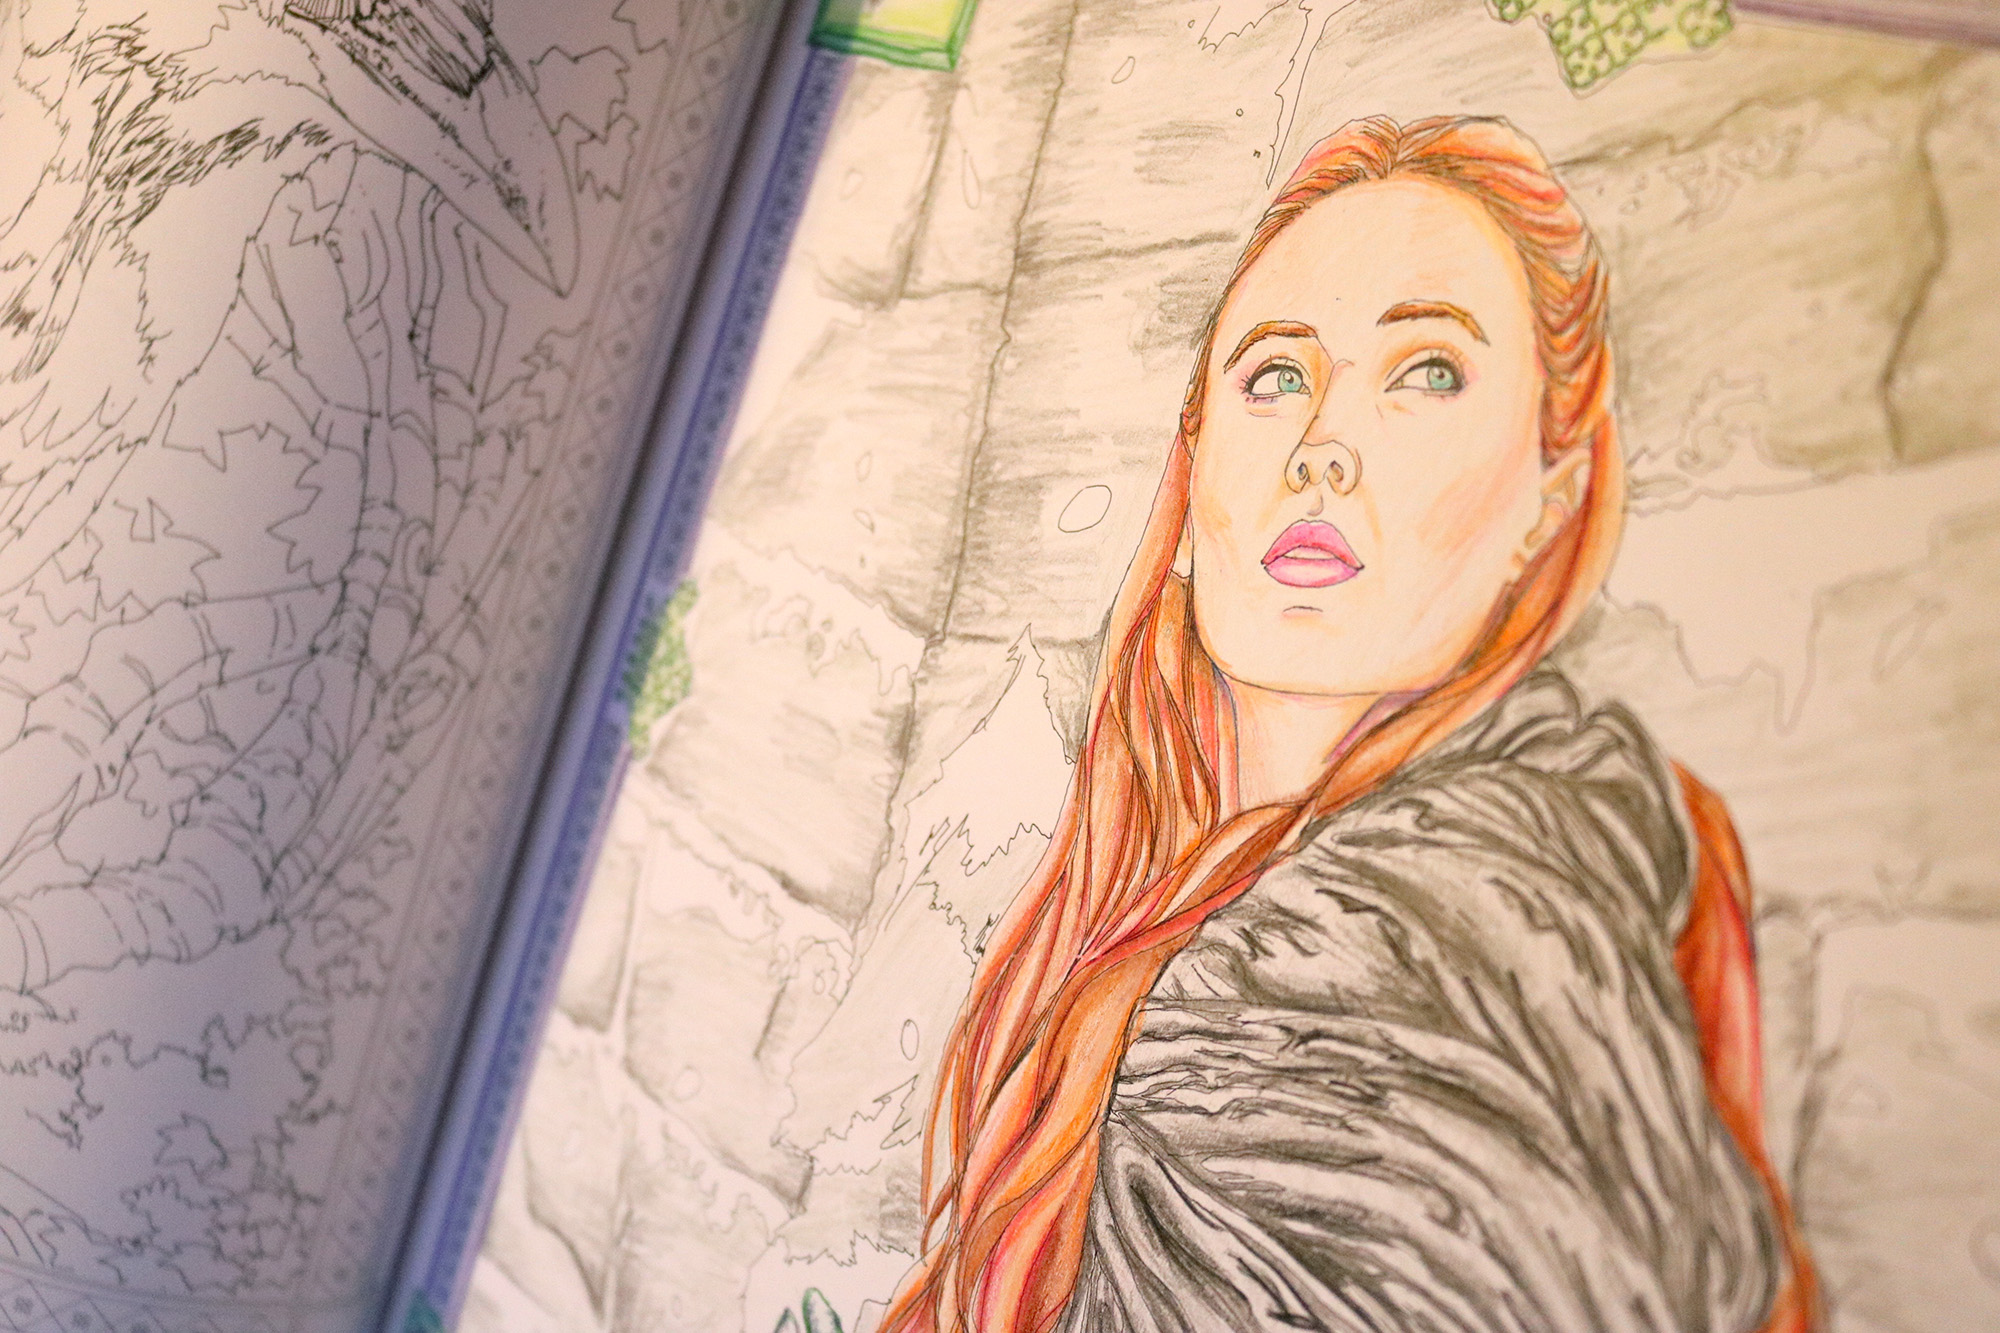 sansa stark game of thrones coloring book - Game Of Thrones Coloring Book